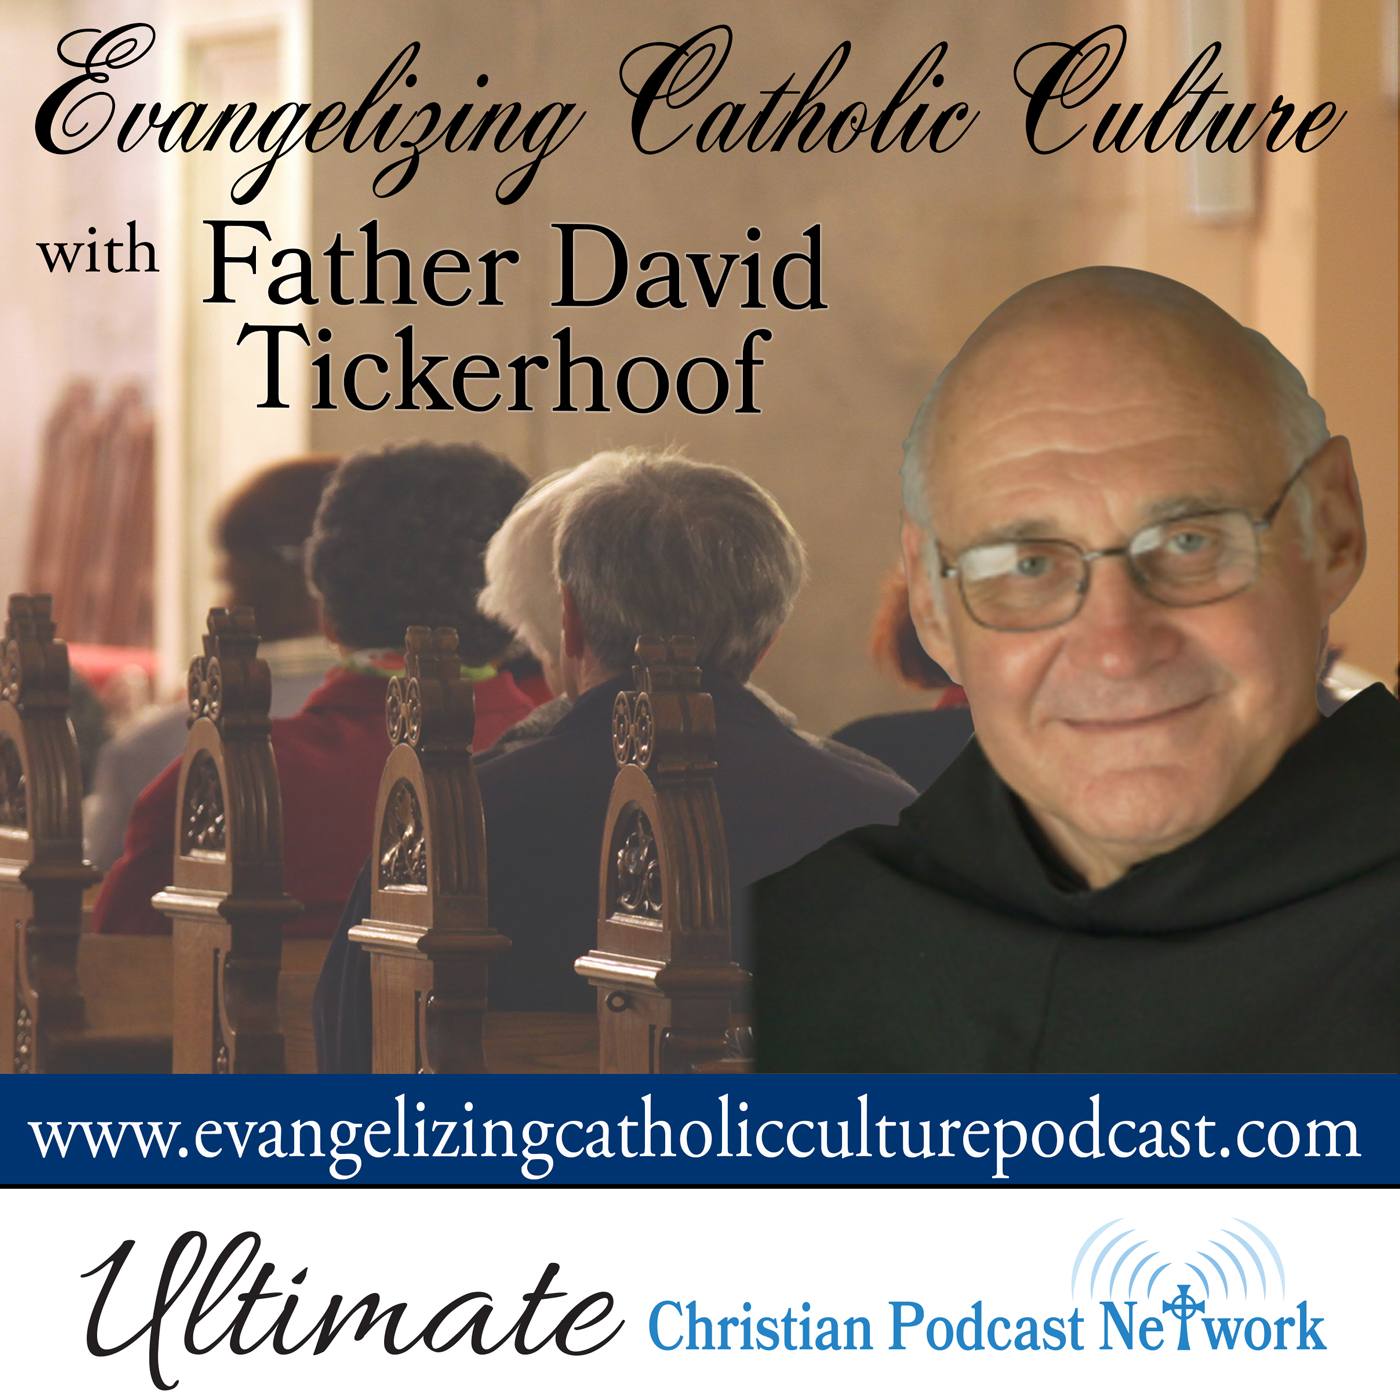 Evangelizing Catholic Culture with Father David Tickerhoof